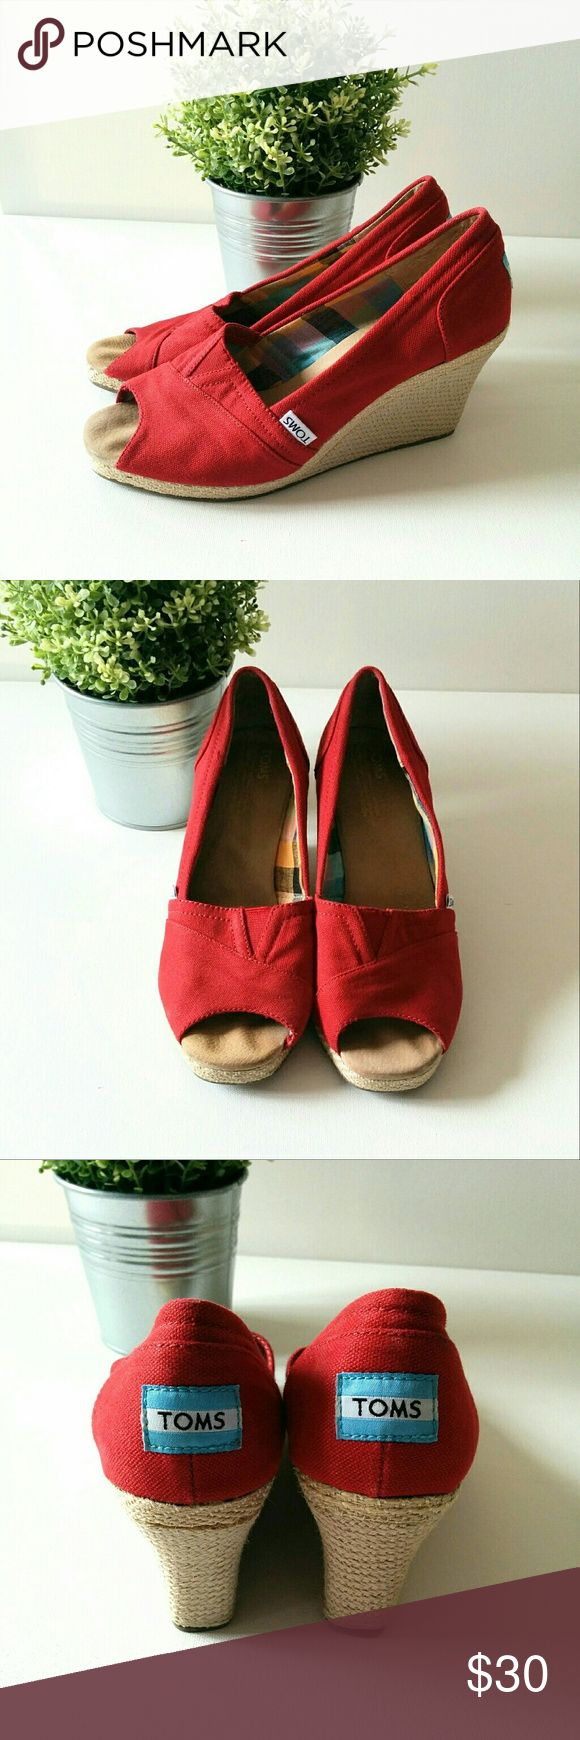 Toms Wedges Red Toms wedge shoe. Good condition, wear on sole and one visible scuff as pictured. TOMS Shoes